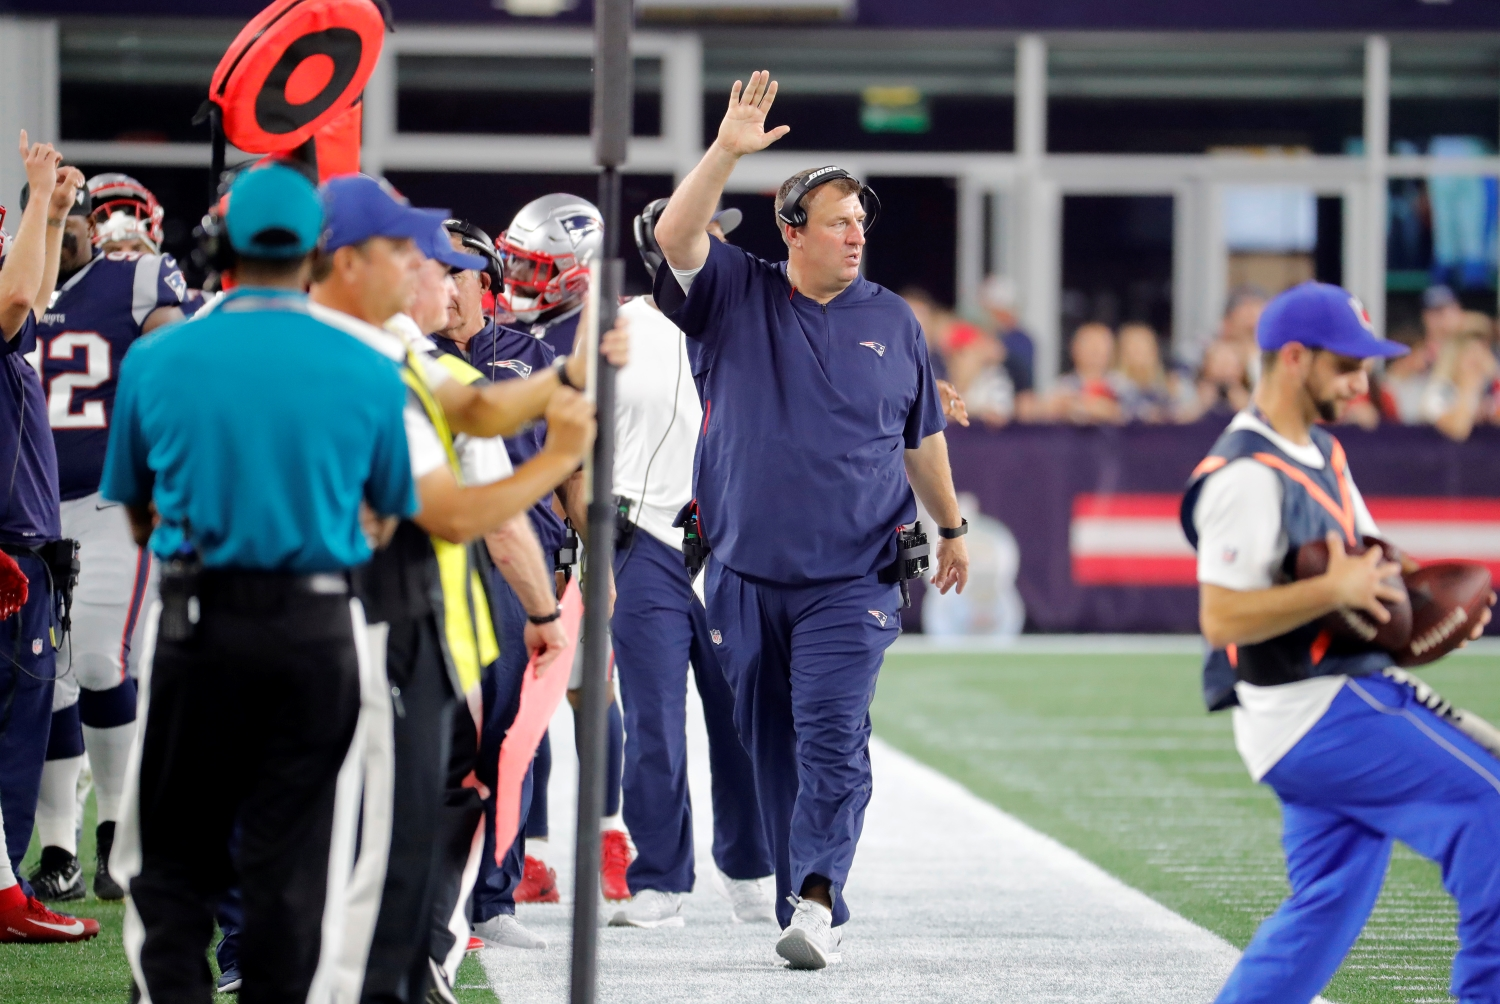 New England Patriots defensive line coach Bret Bielema walks on the sideline during a preseason game.